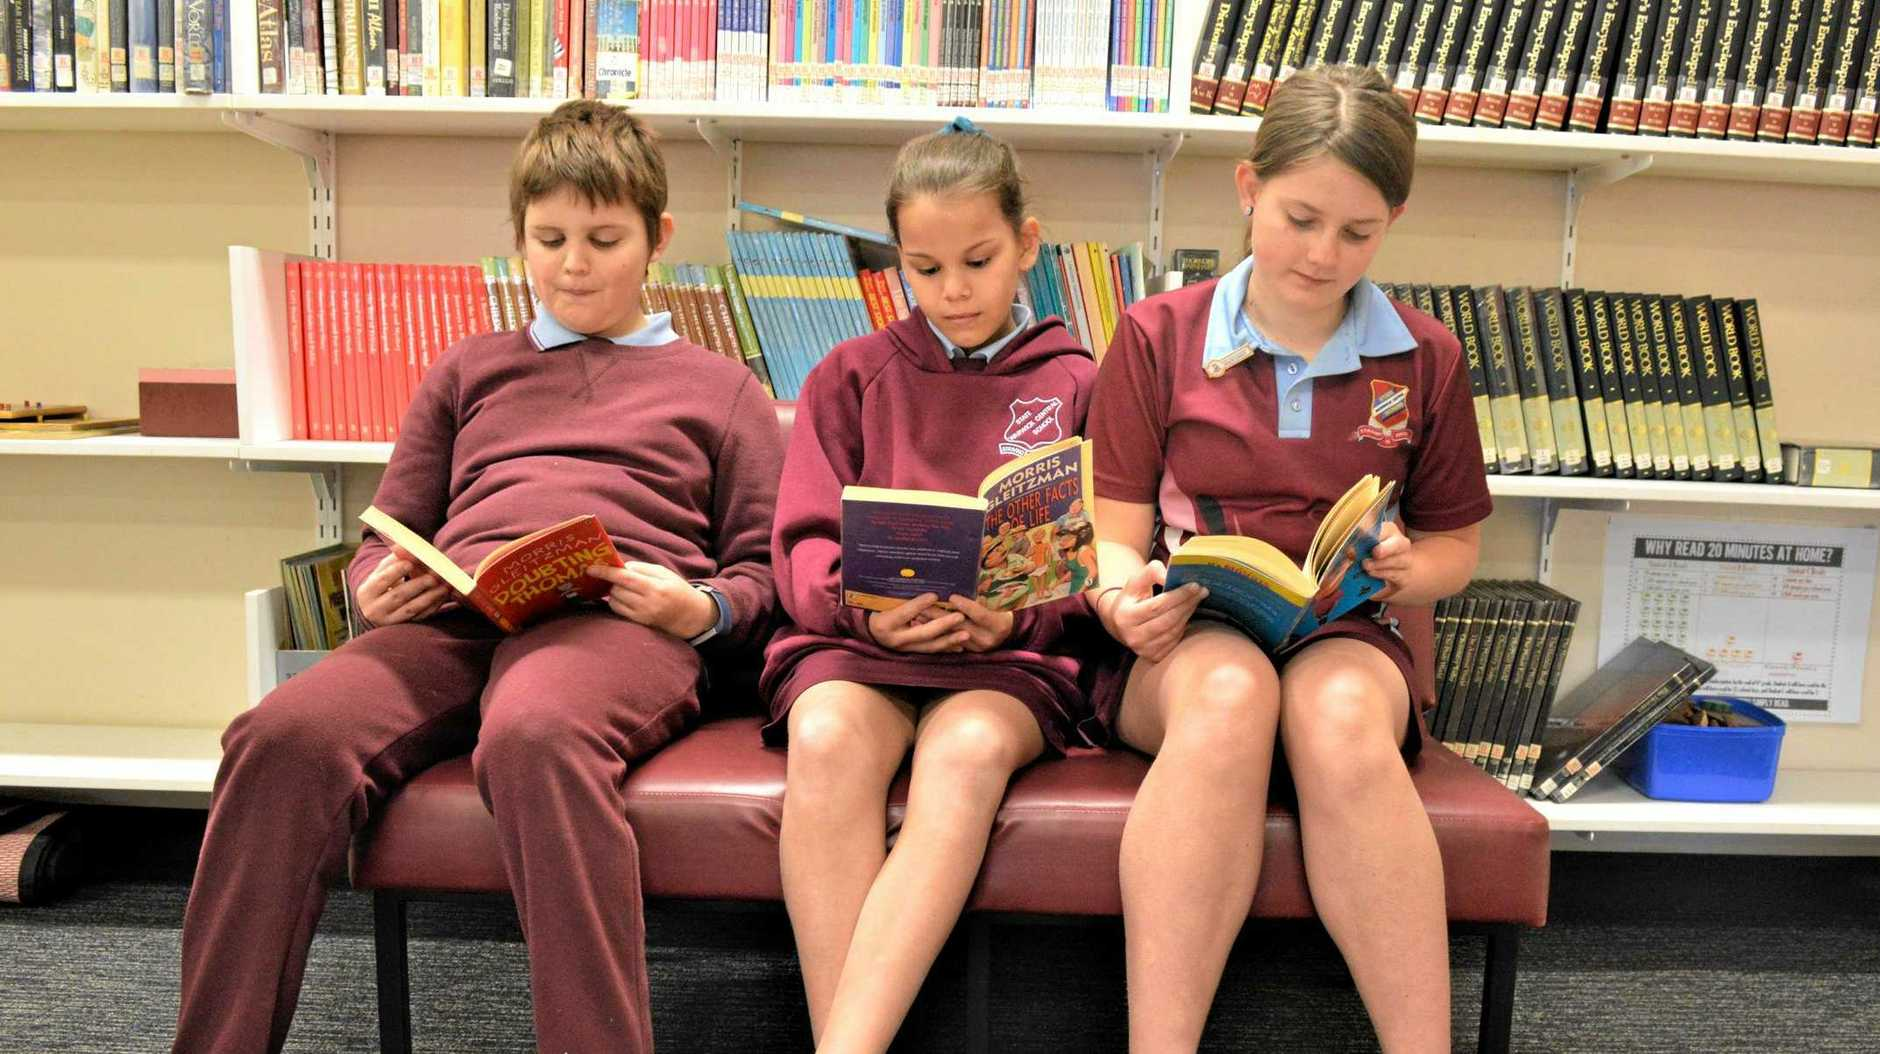 BOOKWORMS: Linkin Parsons, Emillie Rowley and Lacey Balloch enjoy the new donation of books.